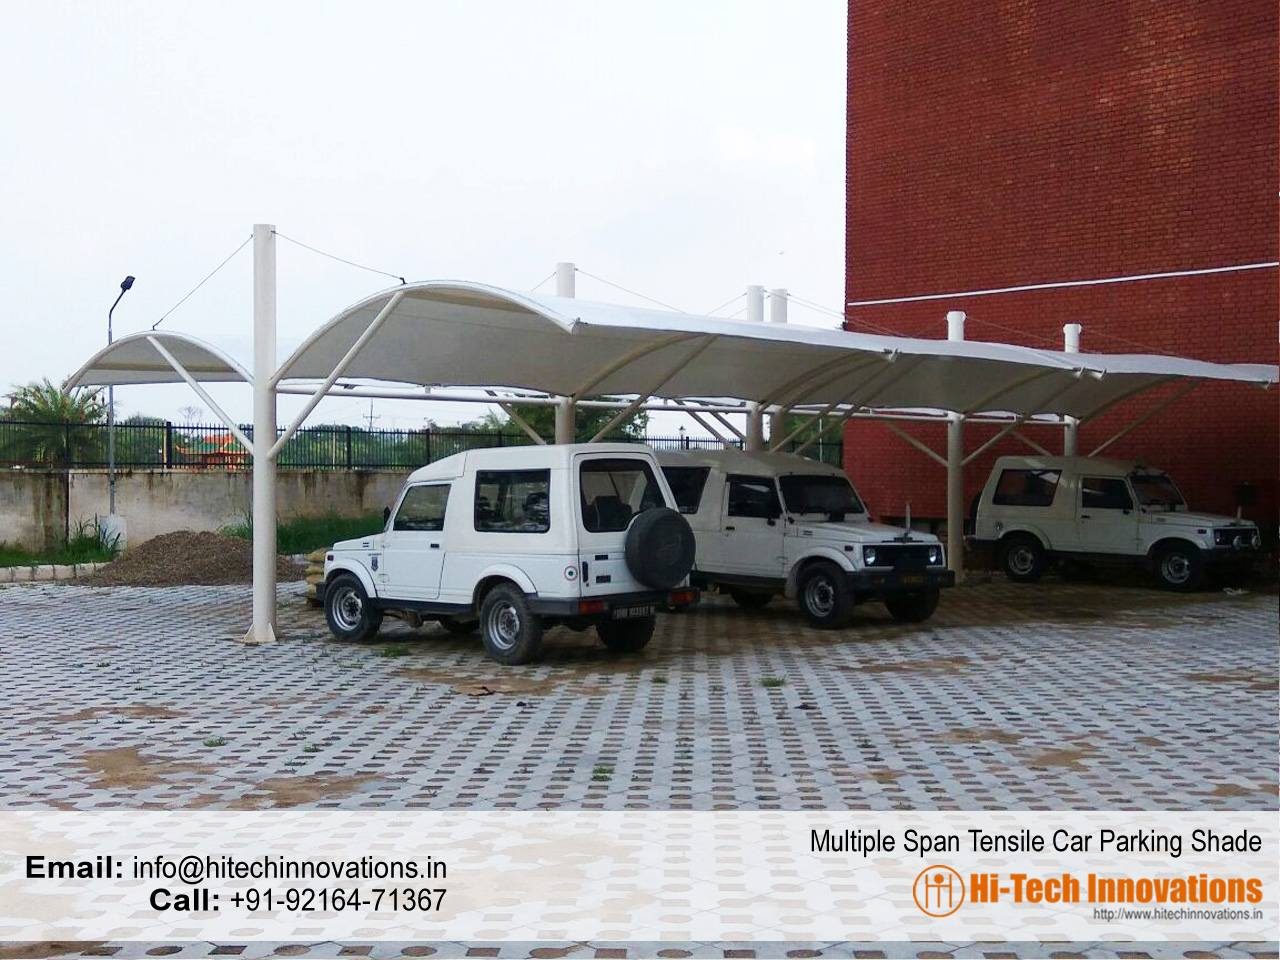 Completed Multiple Span Tensile Car Parking Shed